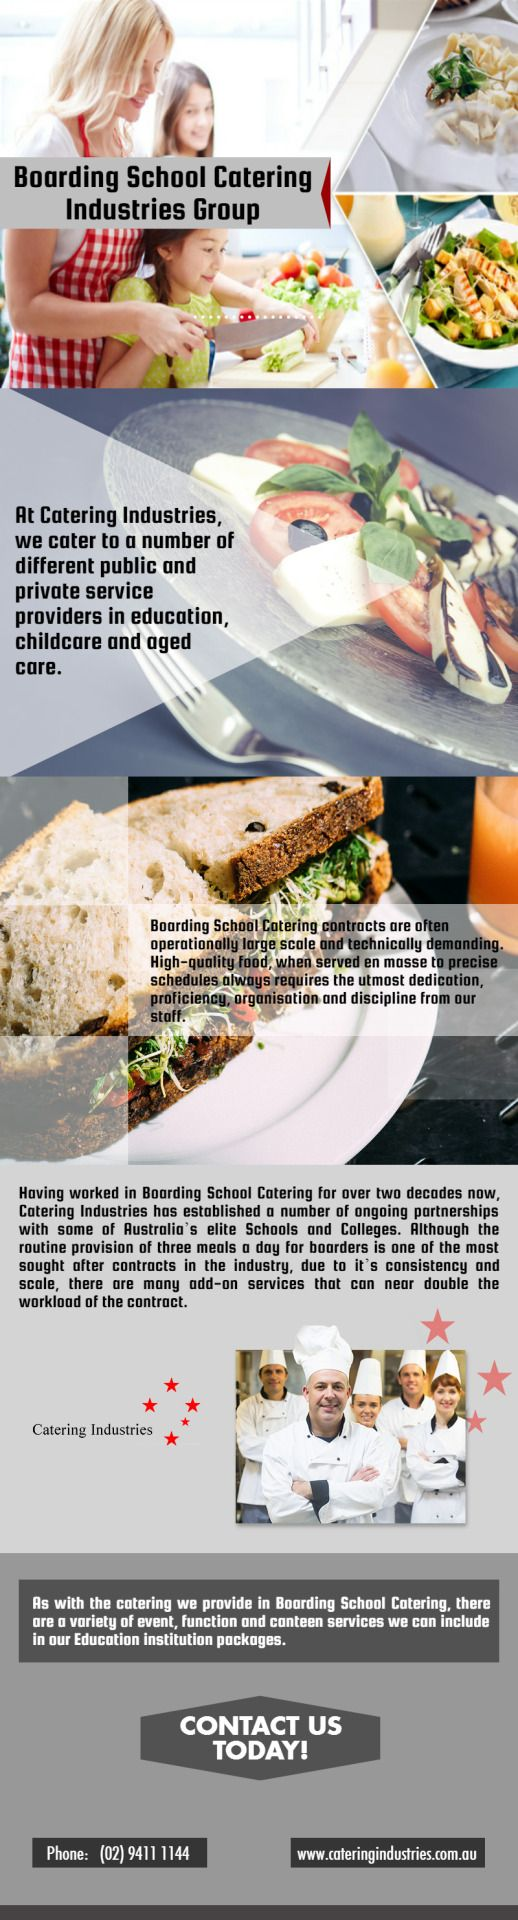 Best Nursing Home Catering Images On   Breastfeeding